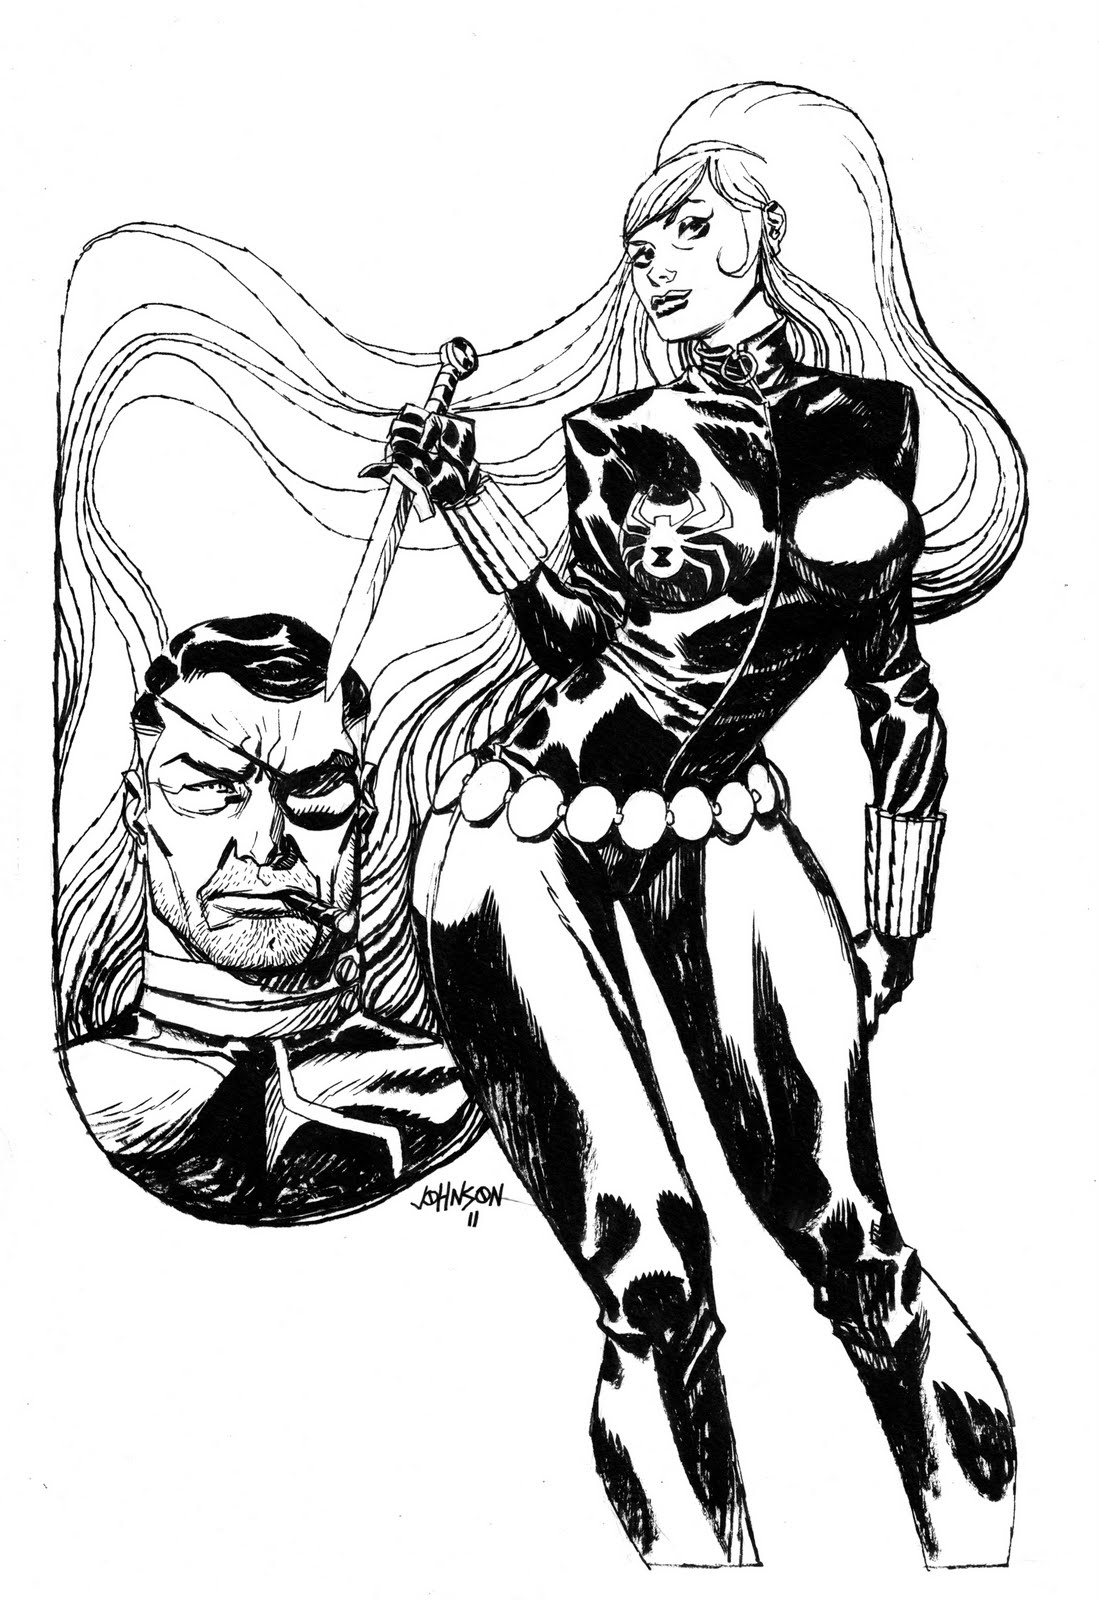 Download Avengers Coloring Pages Here Blackwidow: Comic Twart: Nick Fury B/w Of Black Widow By Rev. Dave Johnson